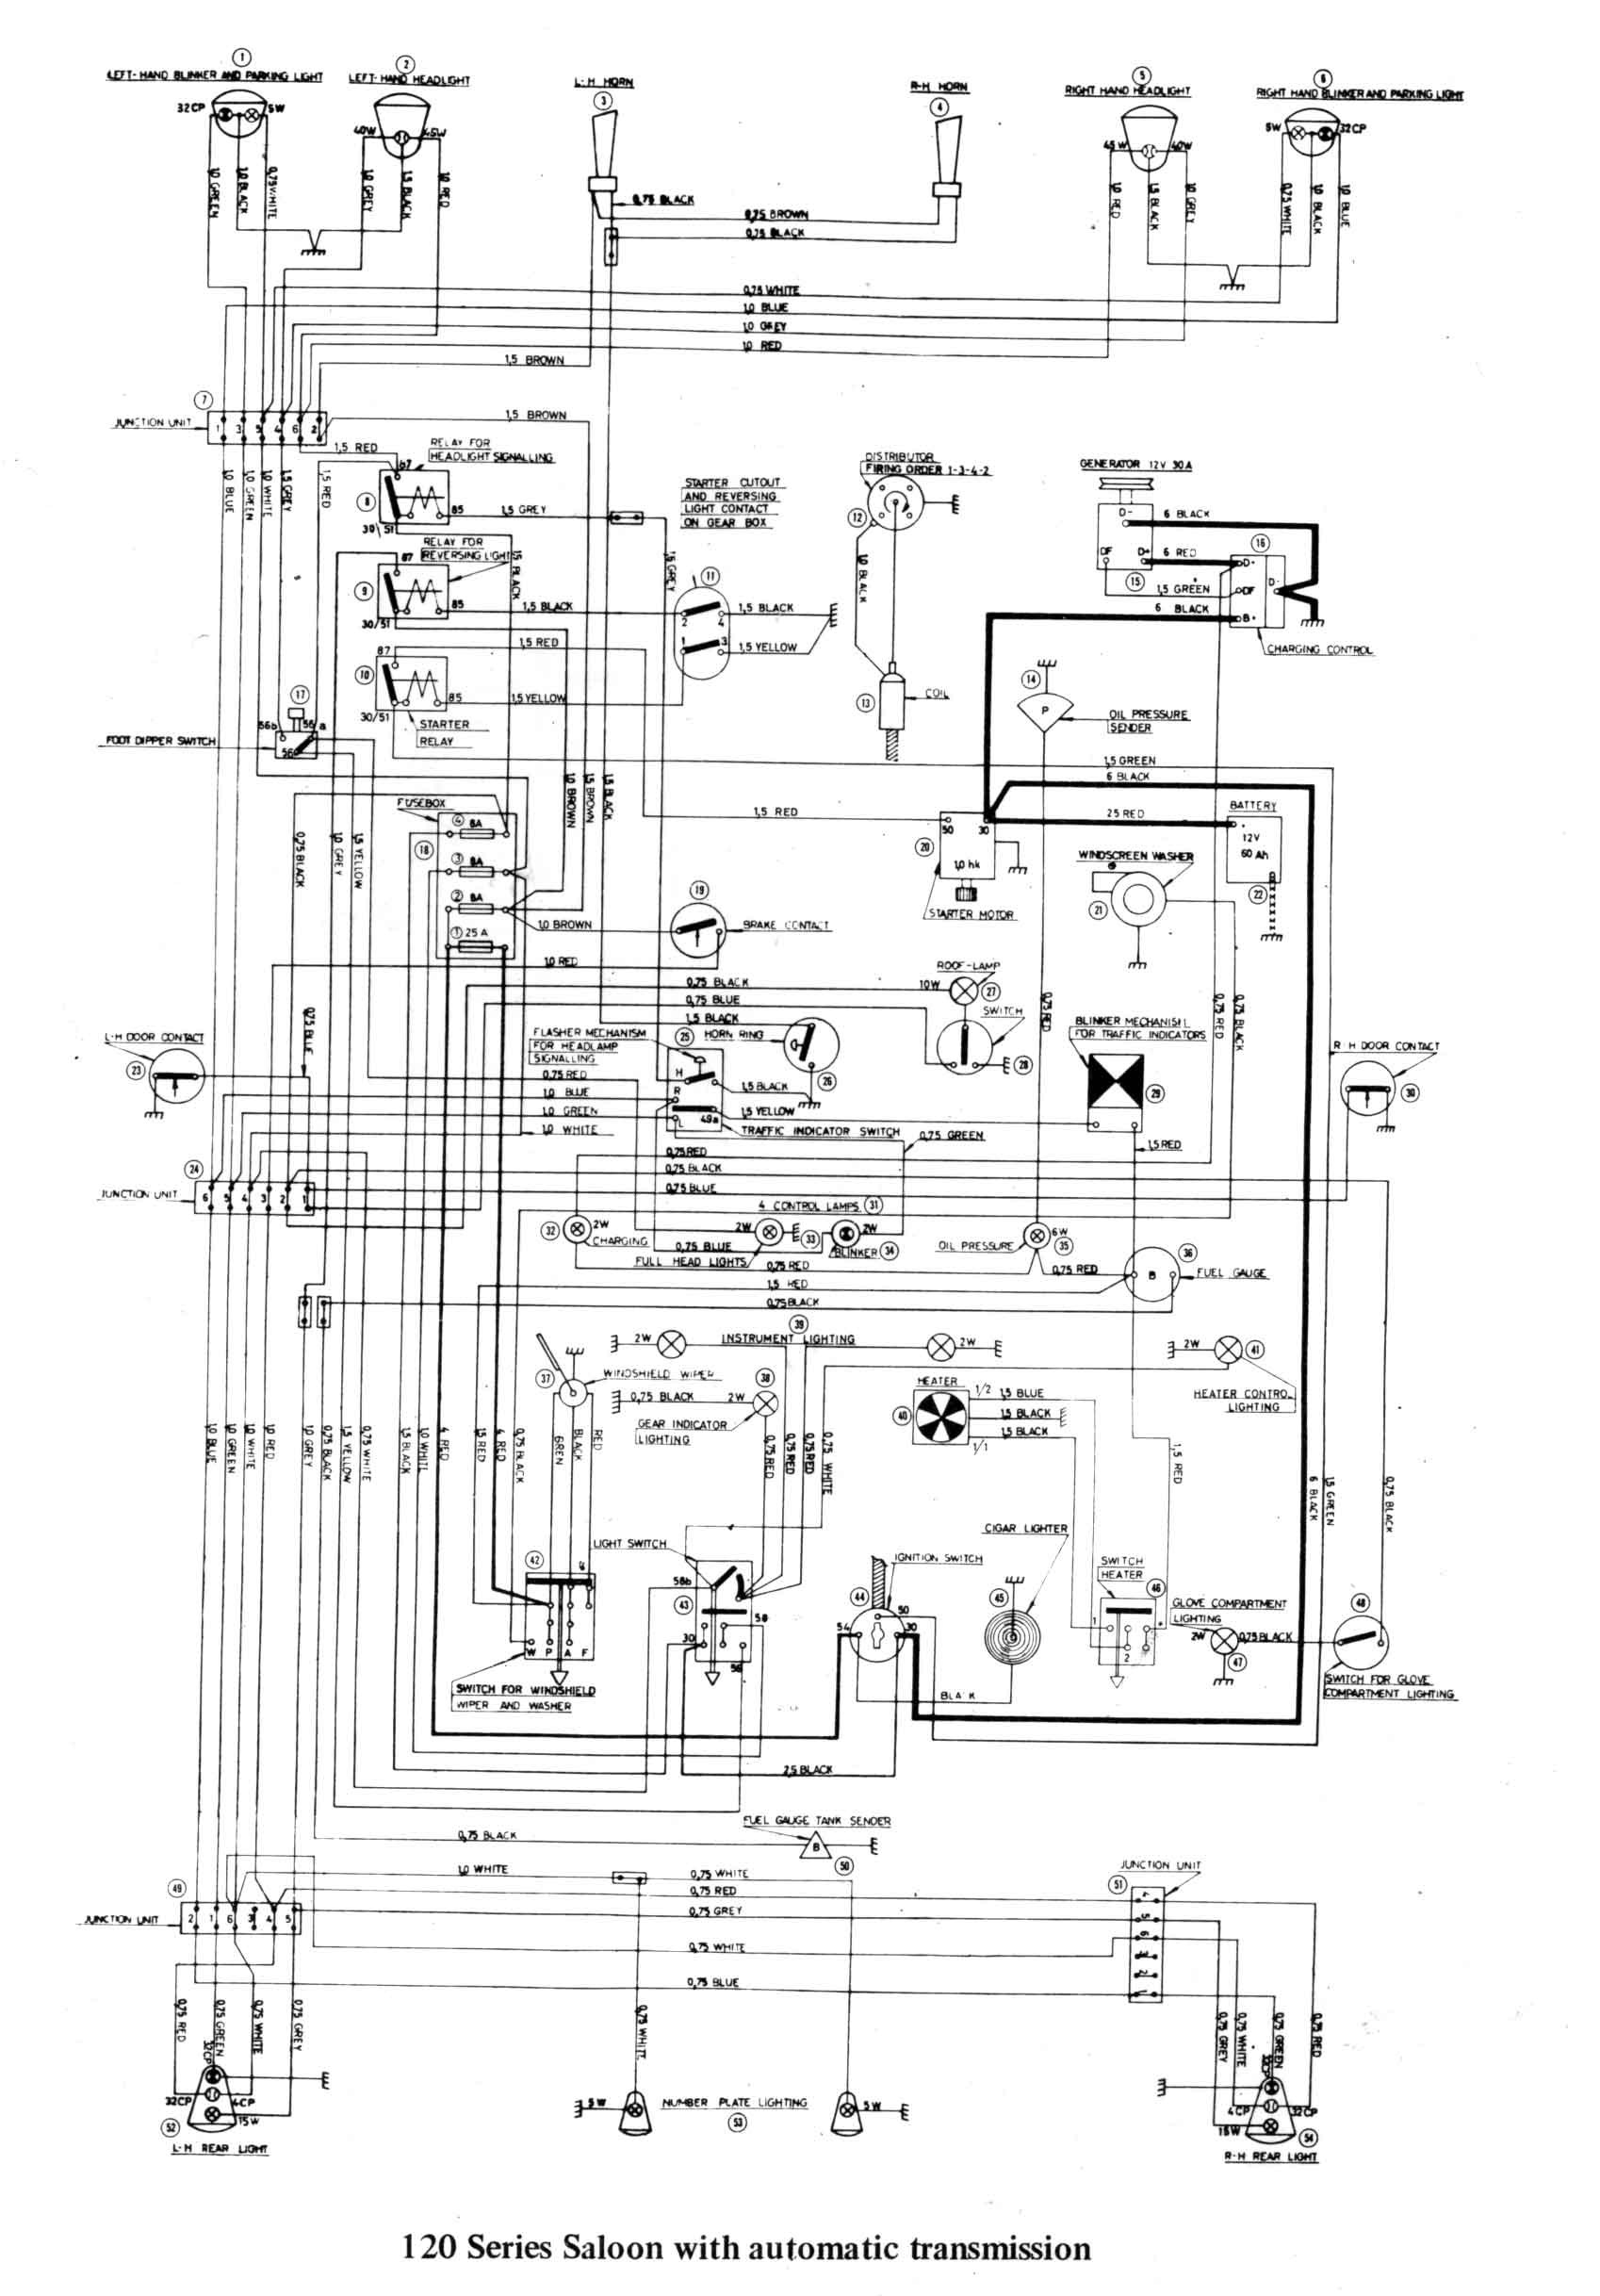 sw em od retrofitting on a vintage volvo rh sw em Basic Electrical Wiring Diagrams 3 Way Switch Wiring Diagram